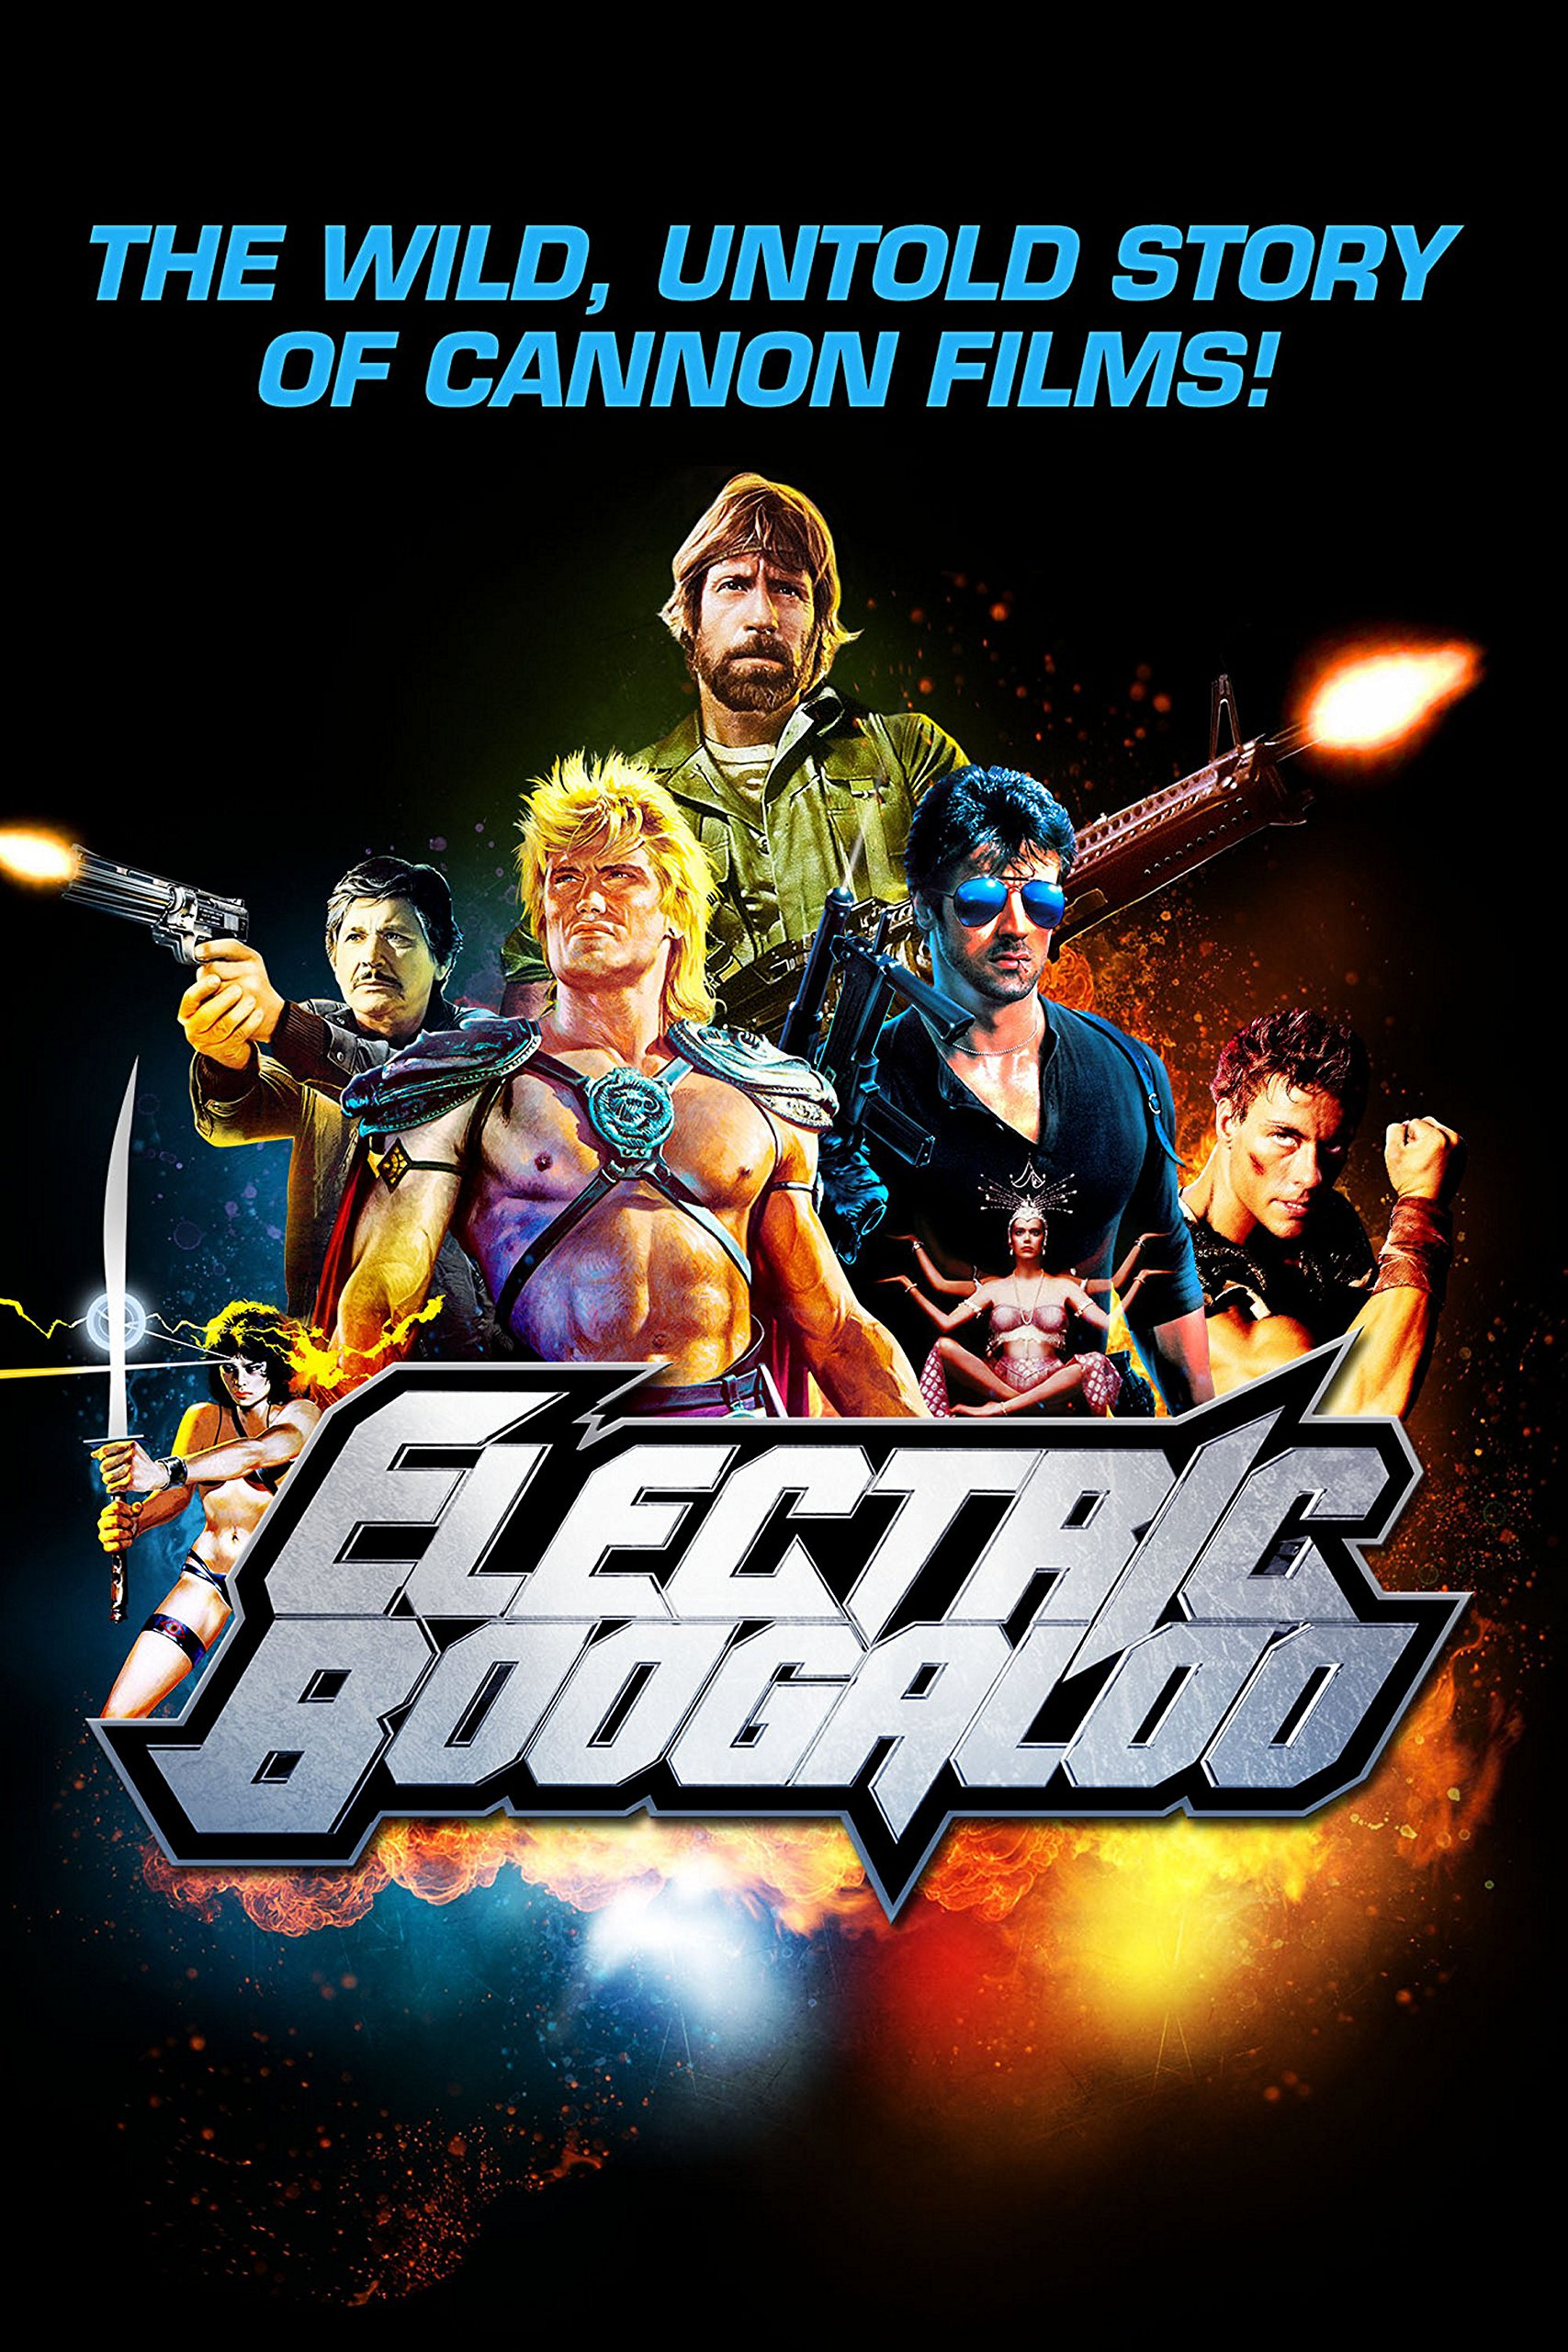 Watch Electric Boogaloo: The Wild, Untold Story of Cannon Films ...